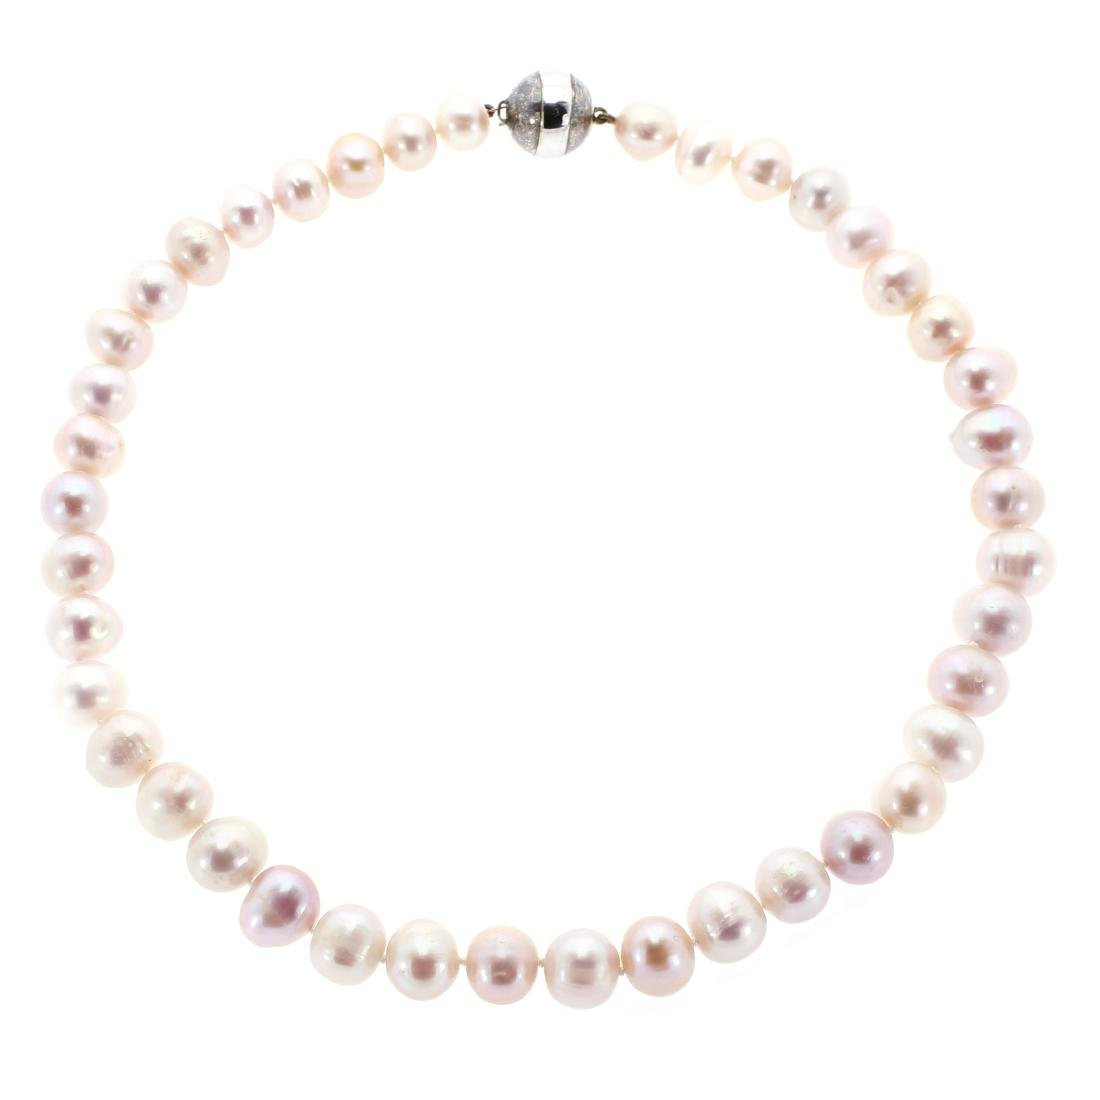 A TAHITIAN PEARL NECKLACE in silver, comprising a